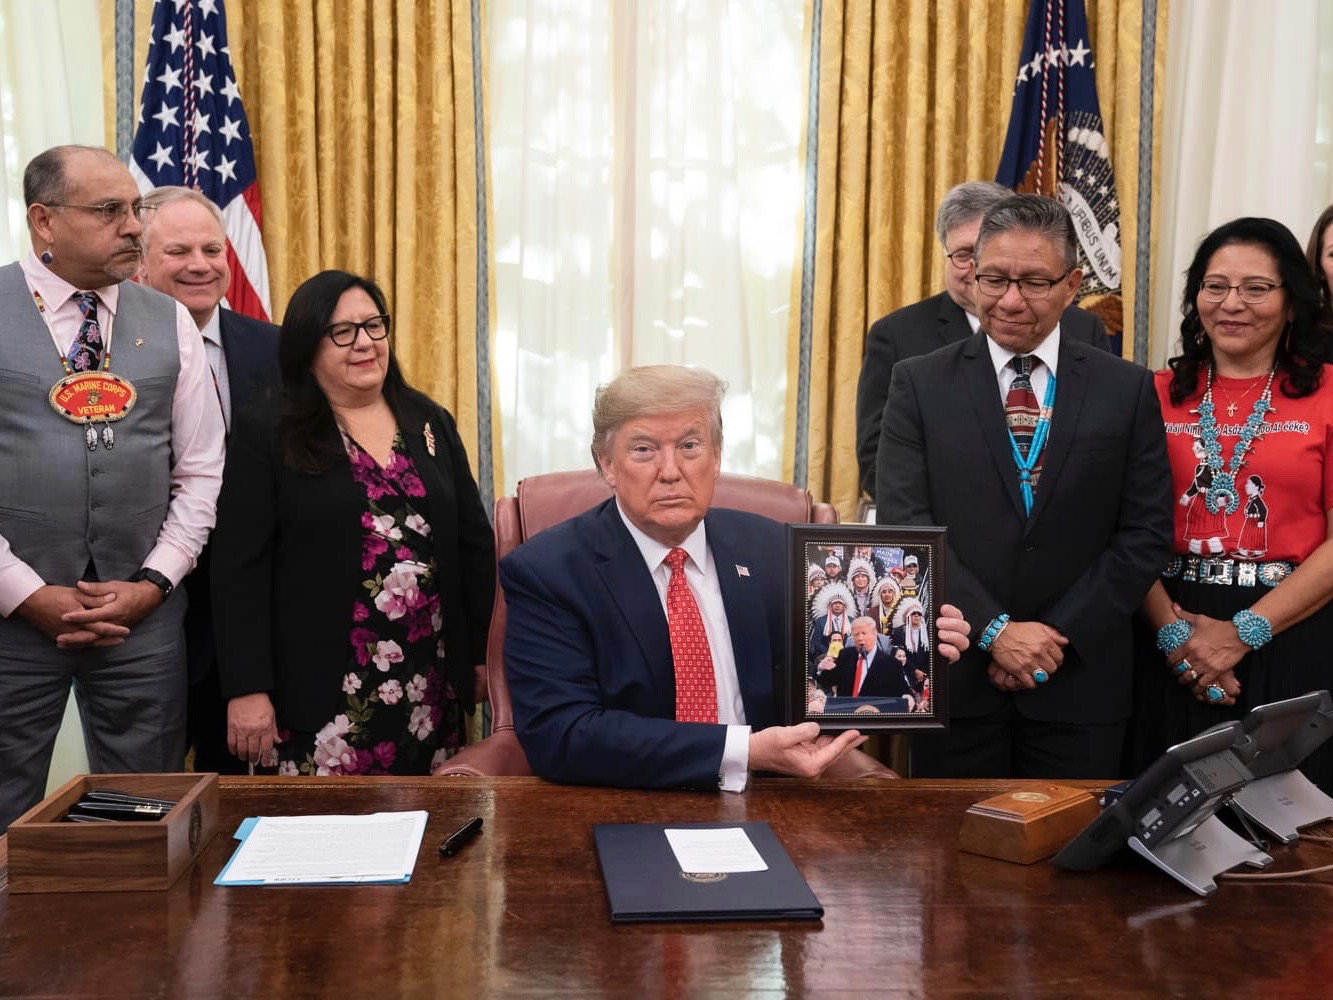 Tribal leaders share statements about White House signing ceremony